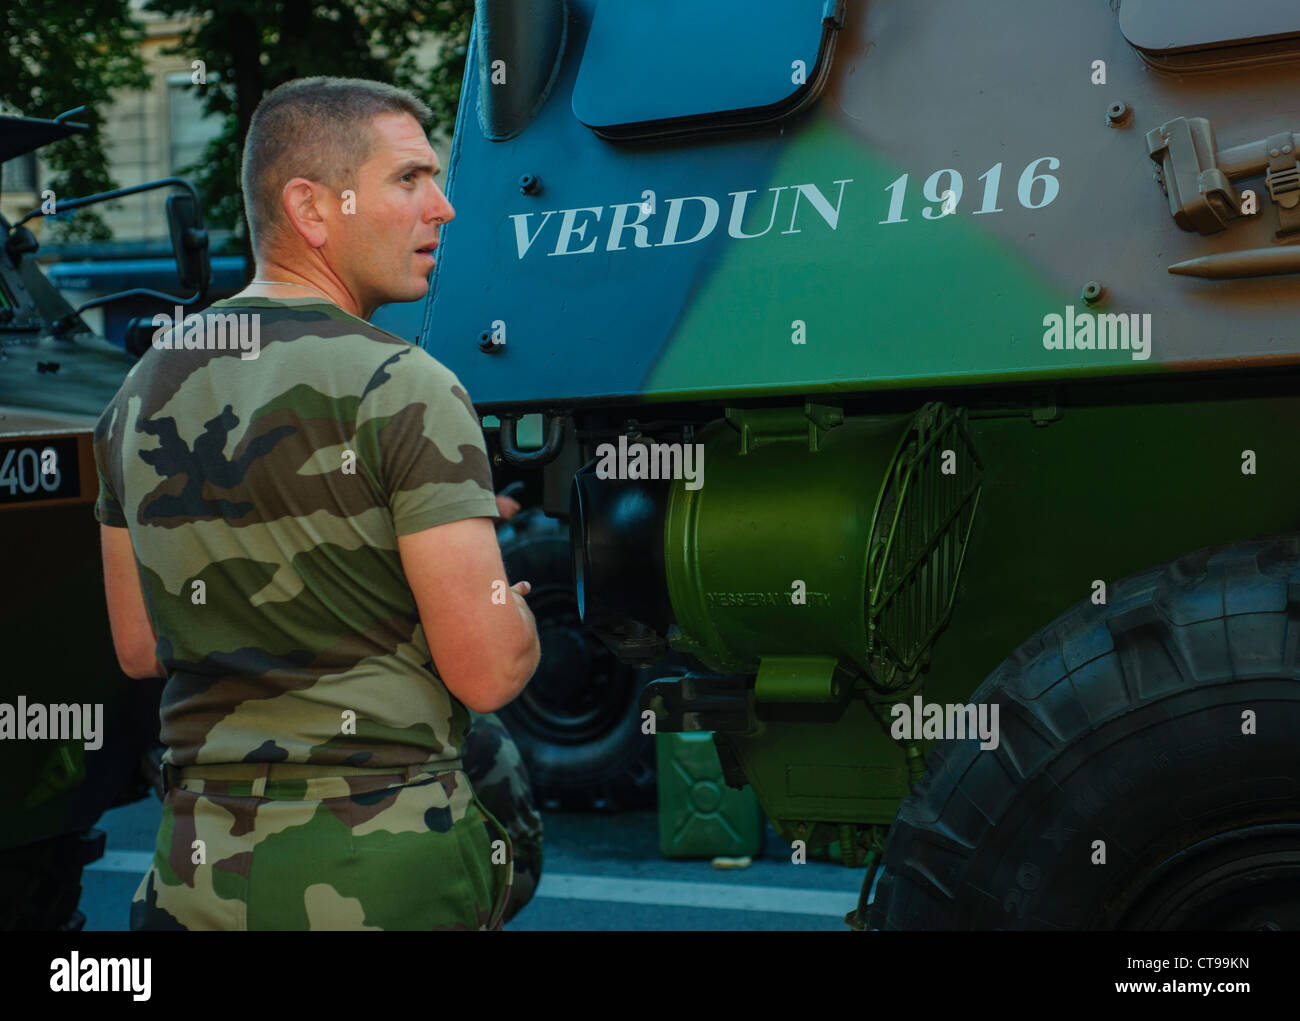 Armee Kerl Dating-Seite